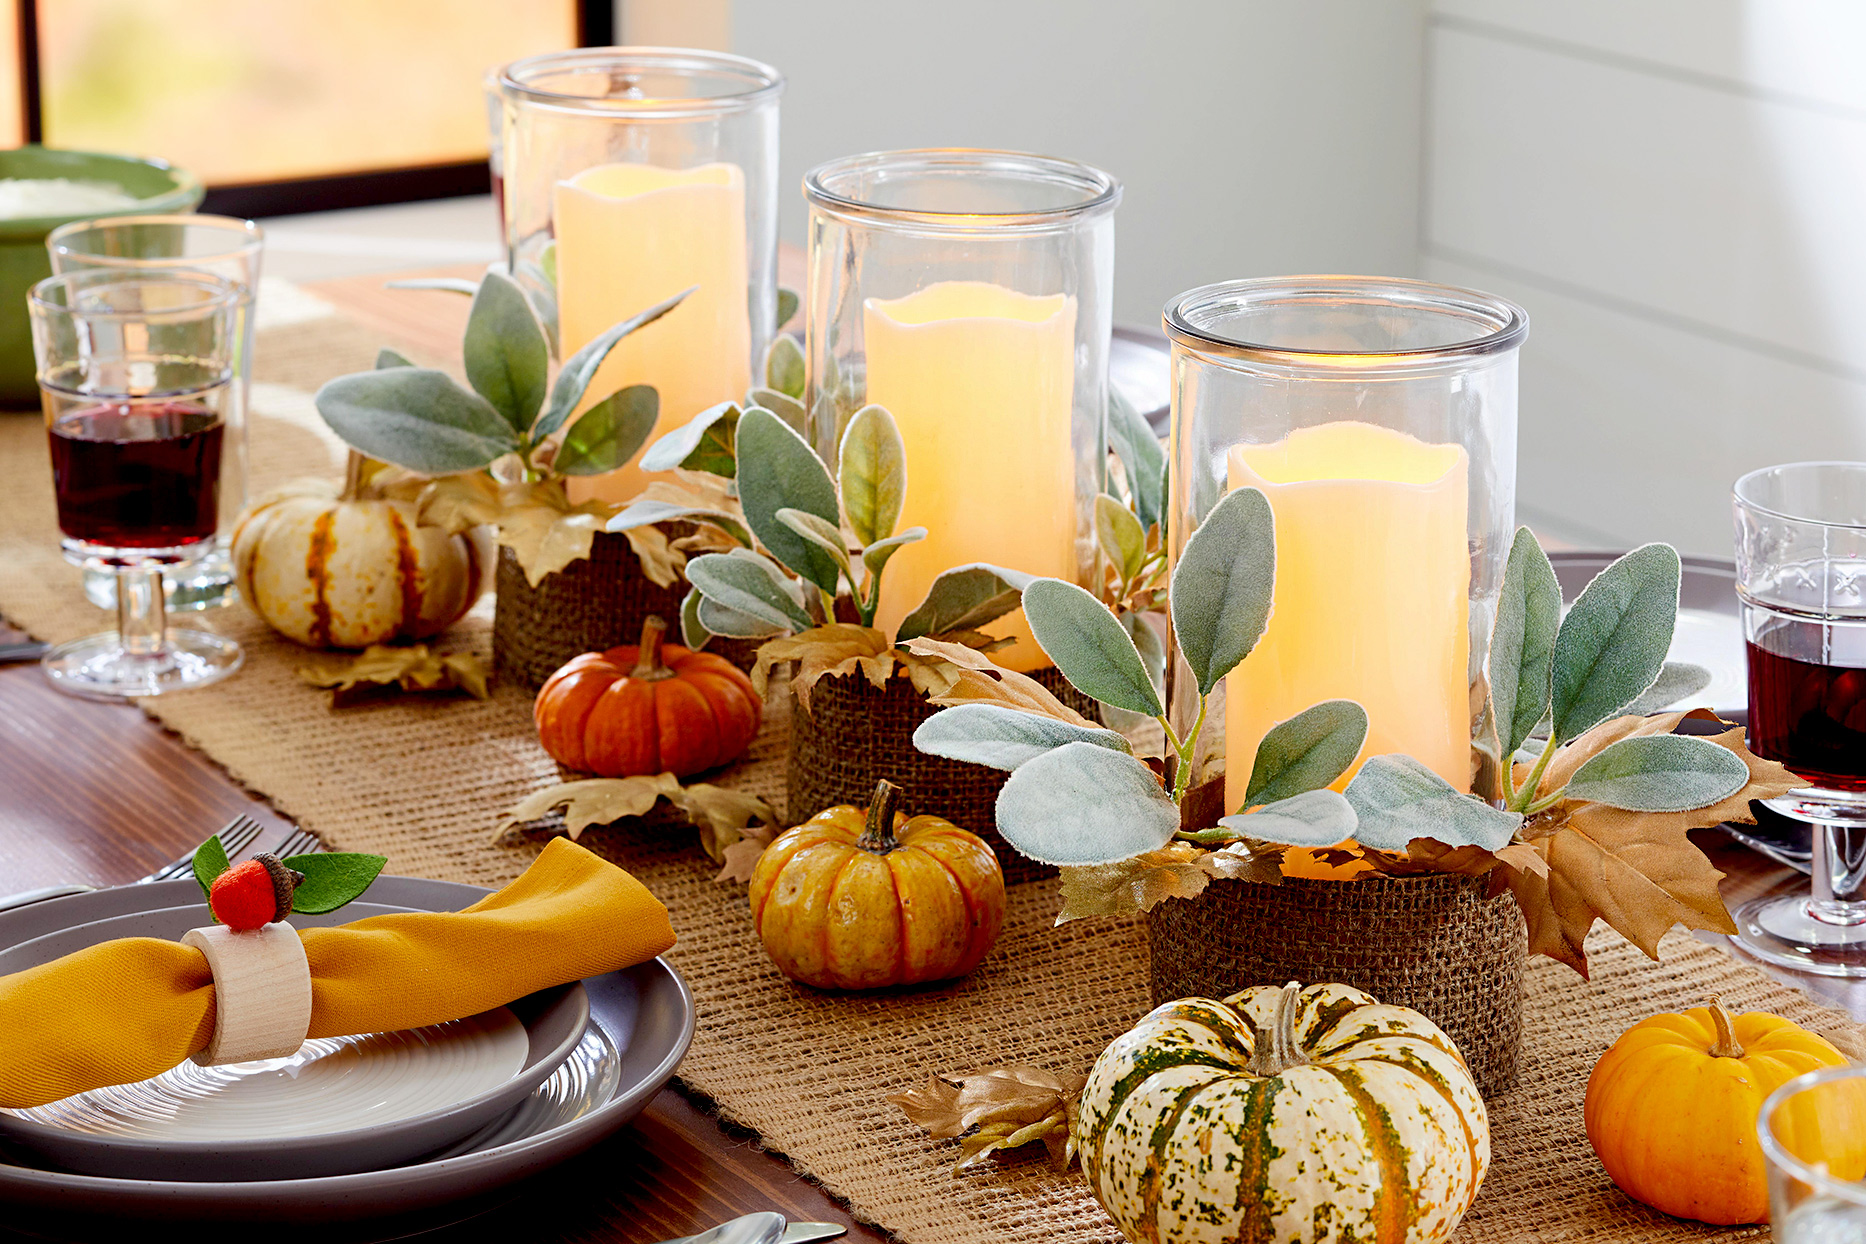 Centerpiece with candles and pumpkins